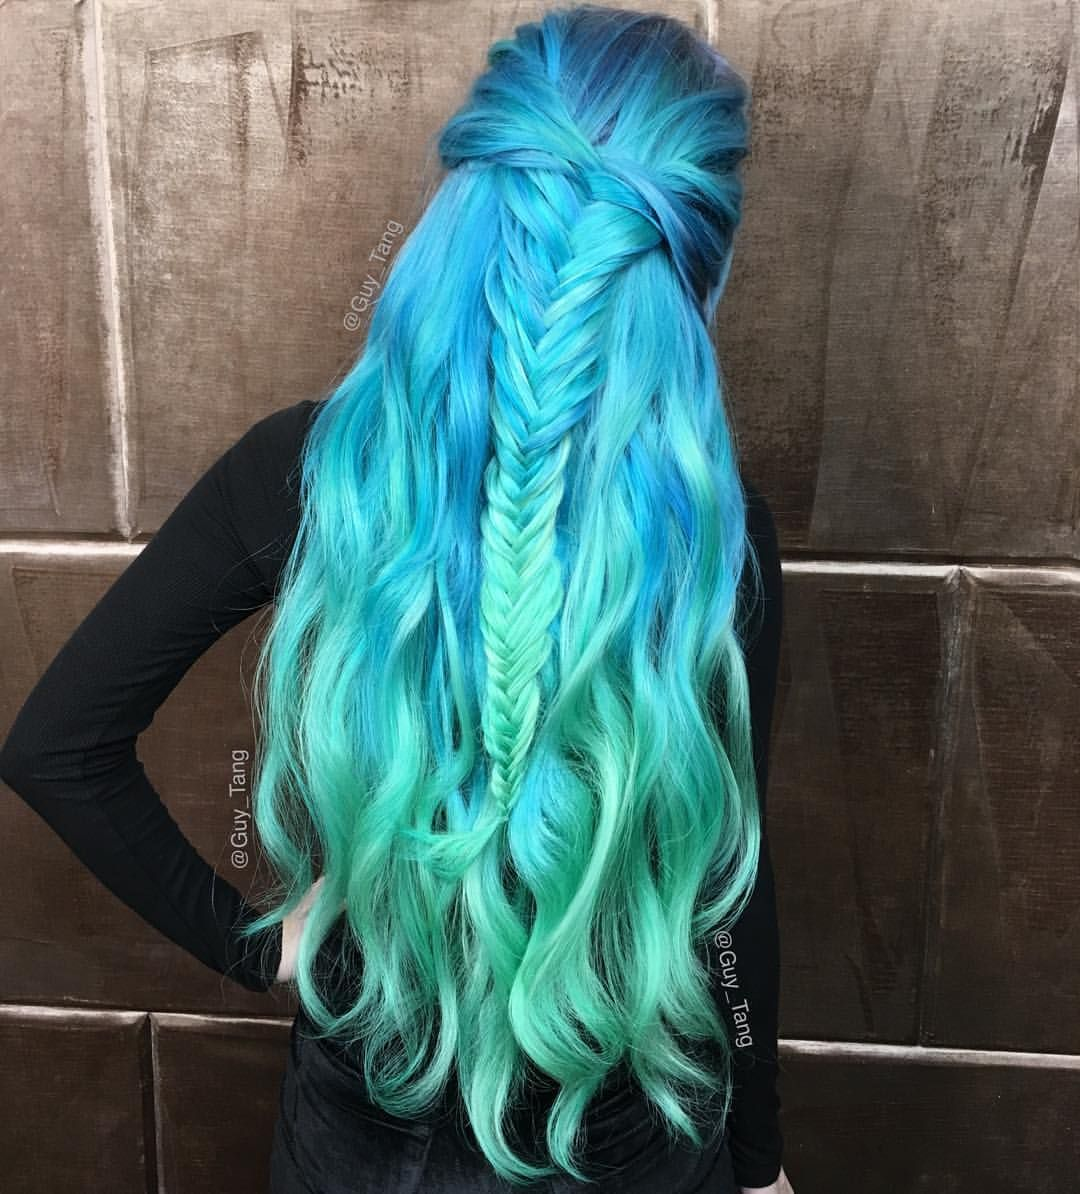 Guy tang on instagram ucmermaid hair donut care on hairbestie